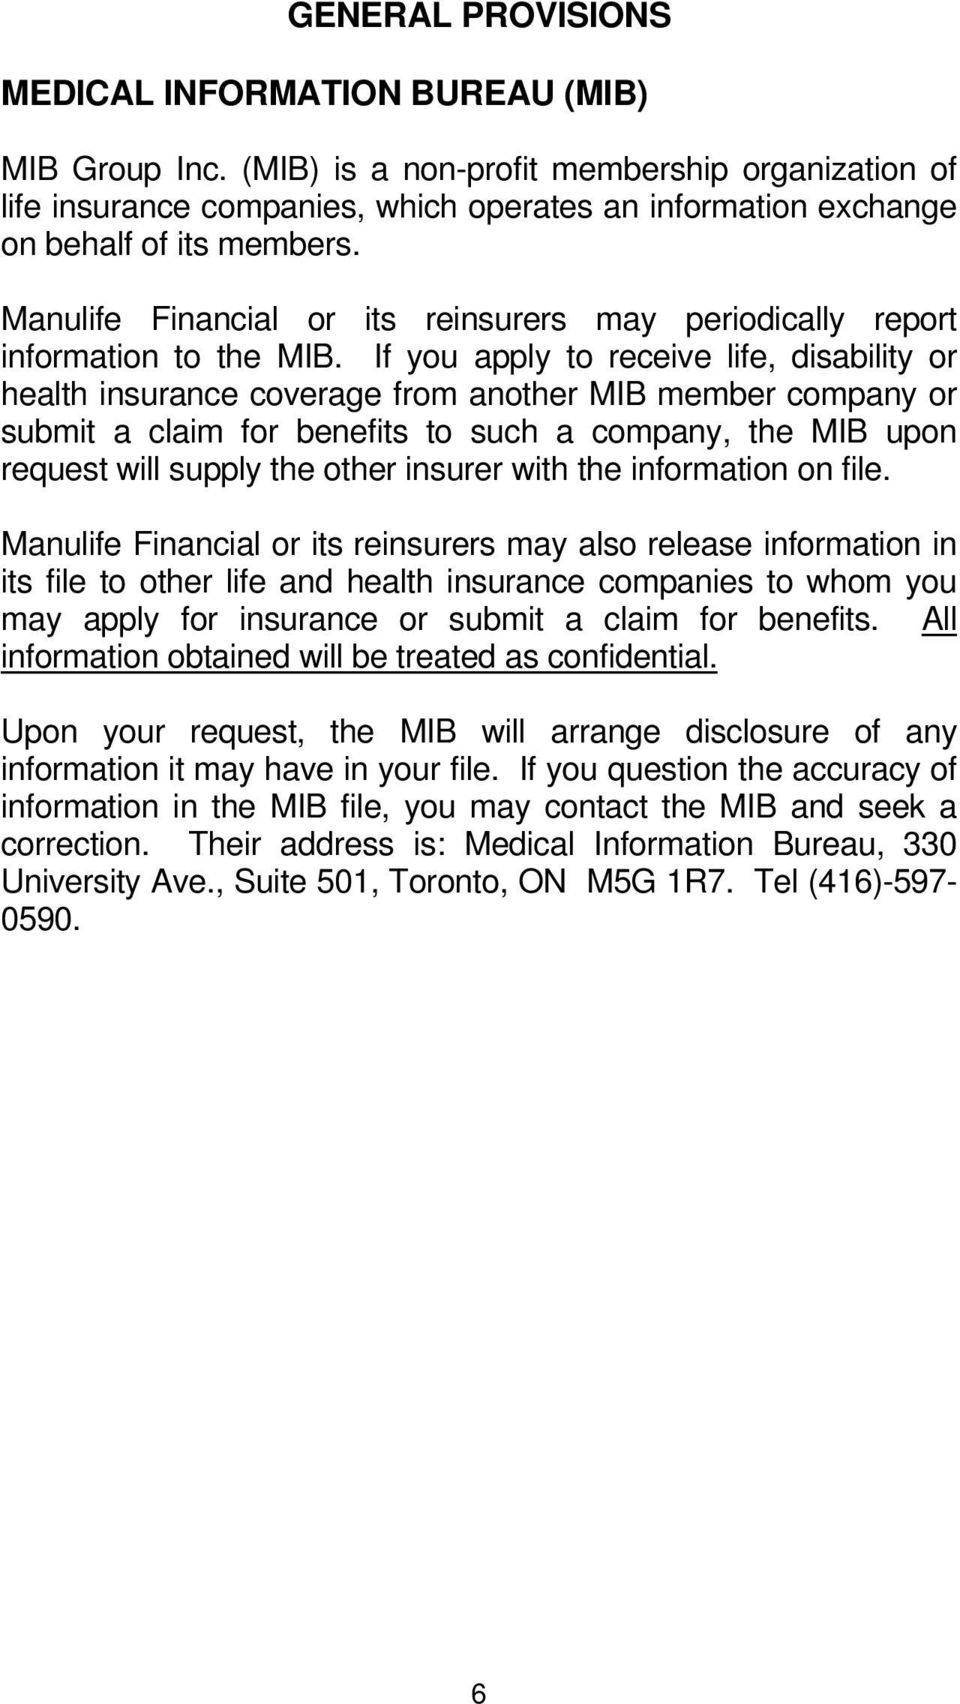 Manulife Financial or its reinsurers may periodically report information to the MIB.